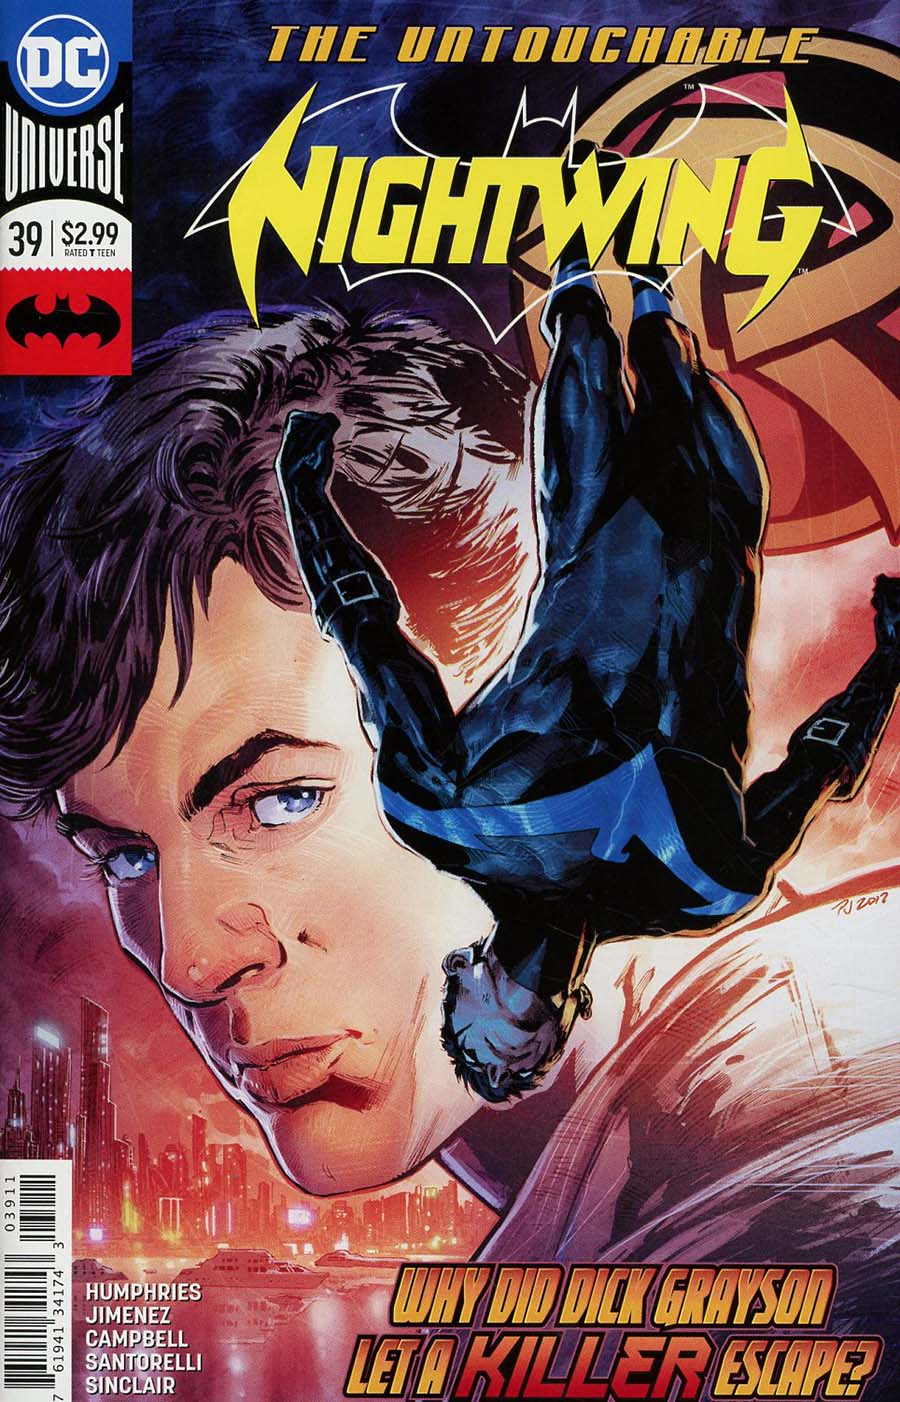 Nightwing Vol 4 #39 Cover A Regular Phil Jimenez Cover